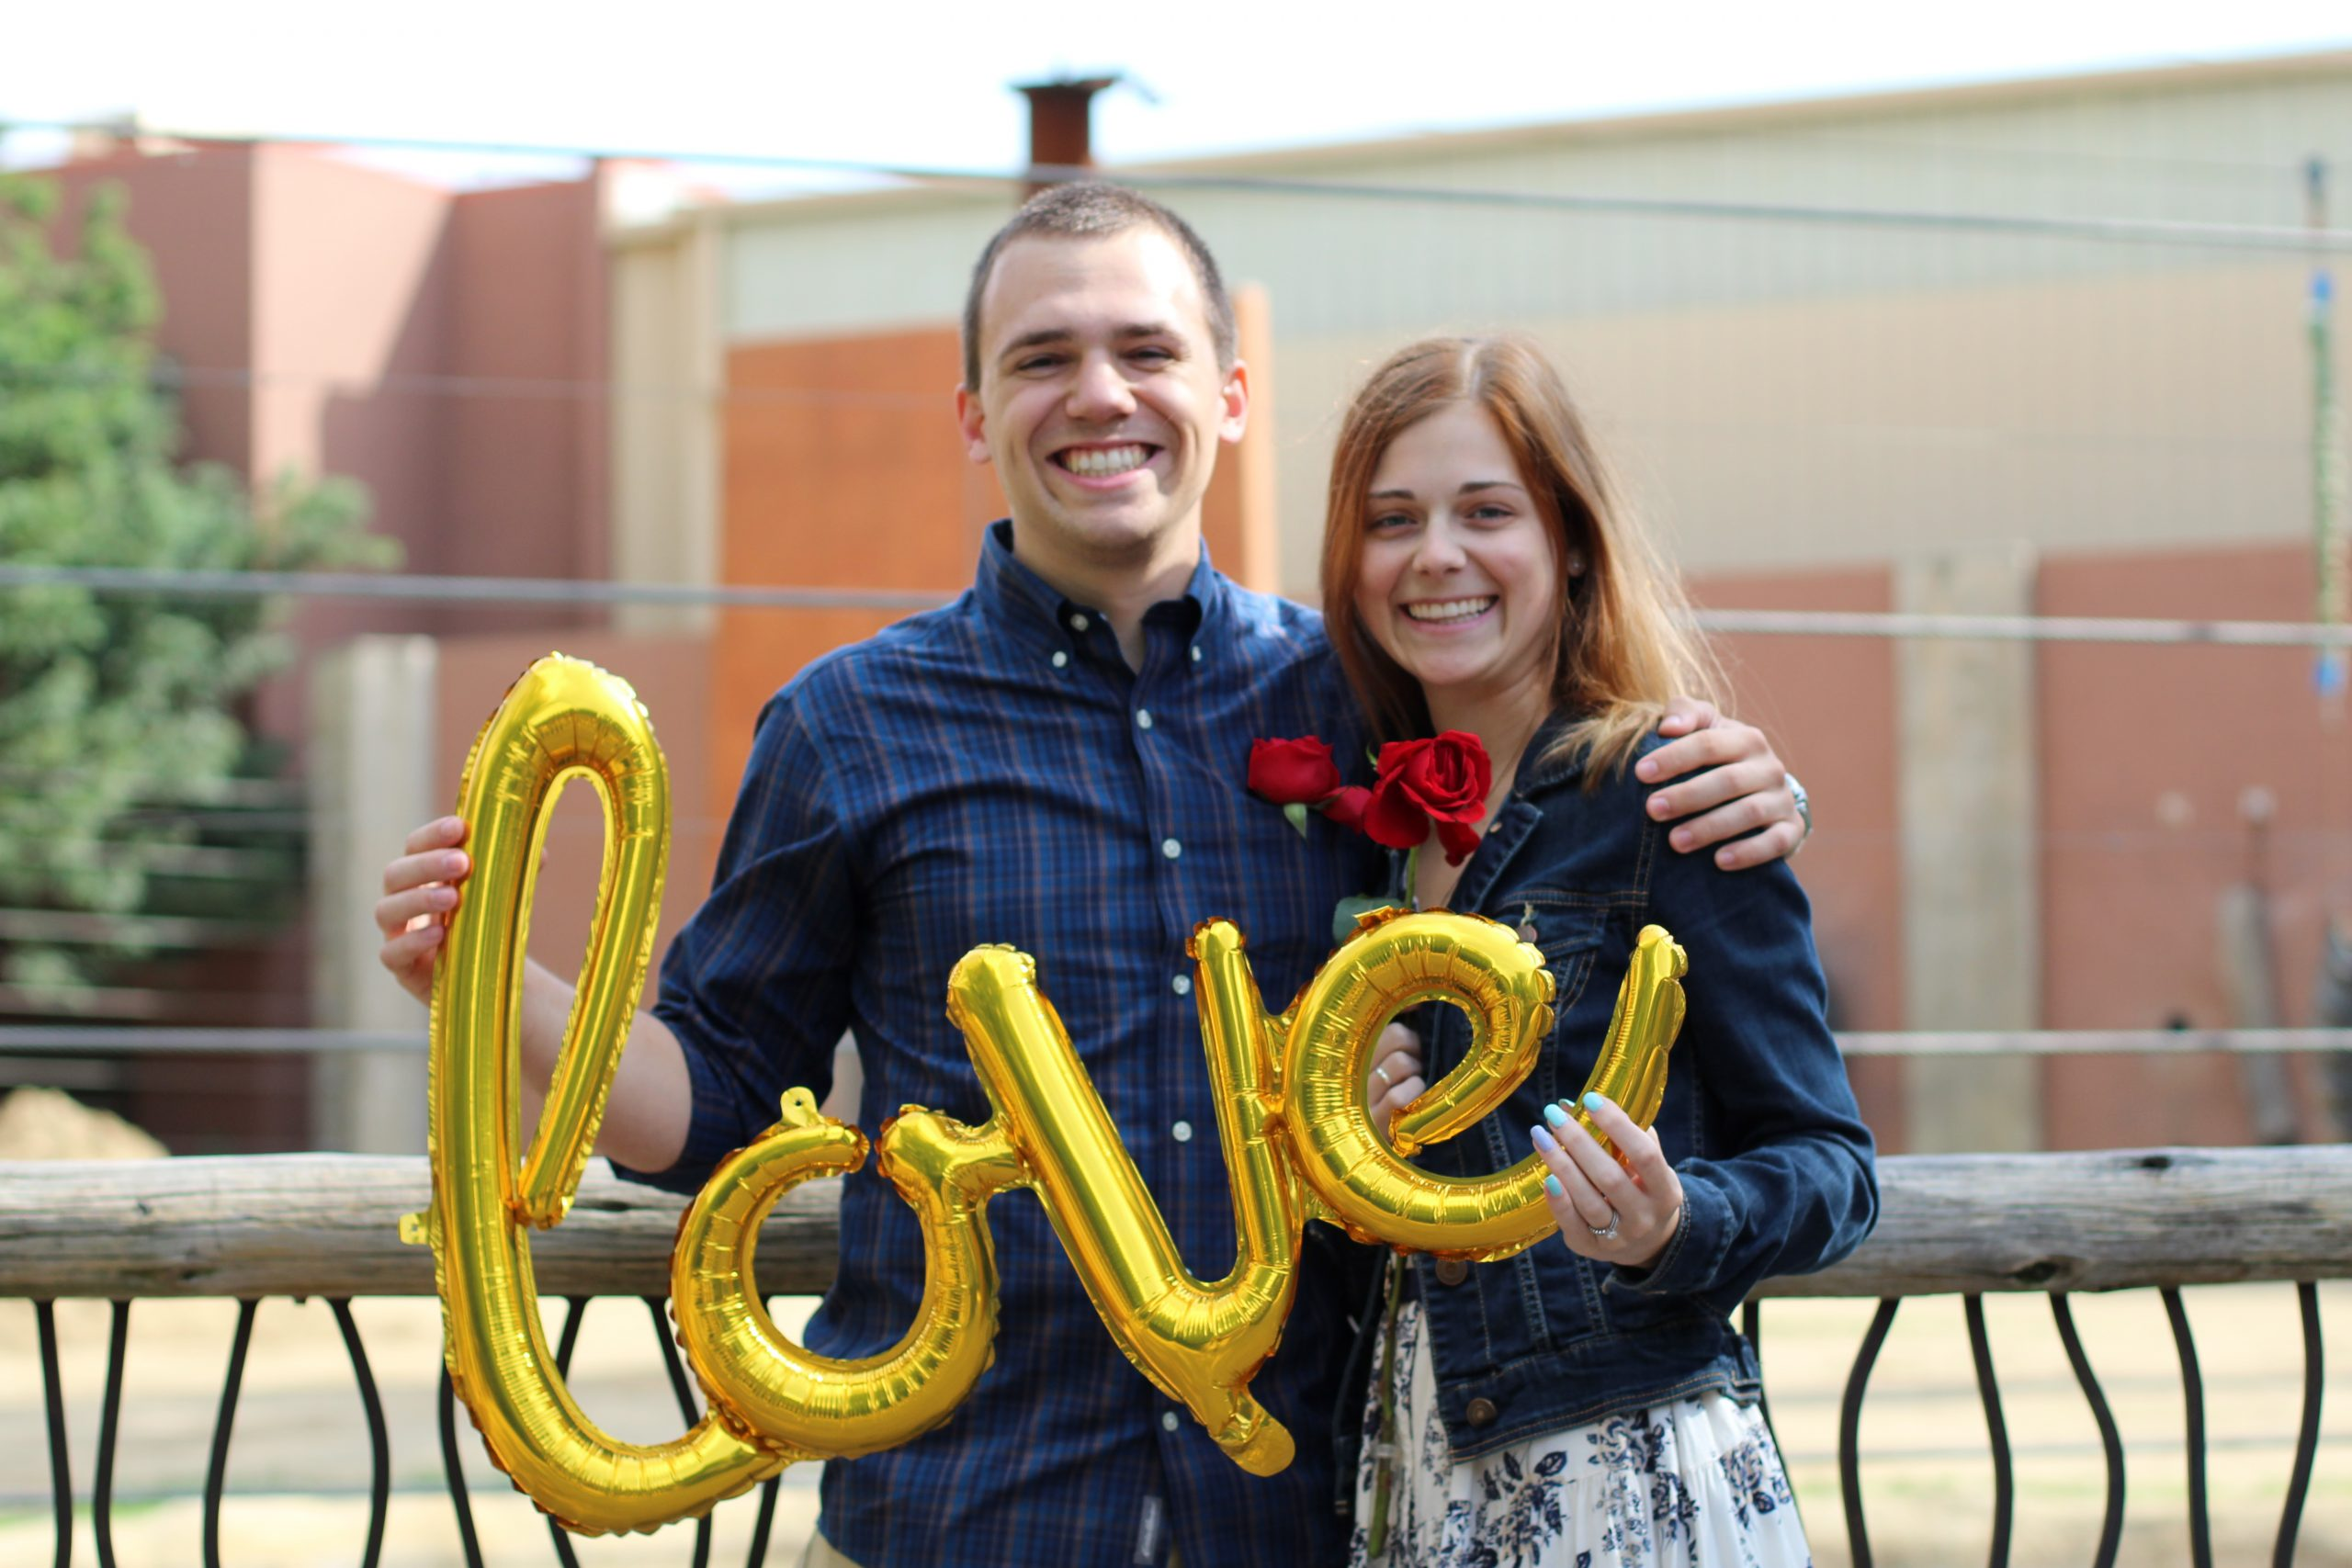 Fiance with His Fiancee Holding Up Balloons that Spell Love After Getting Engaged